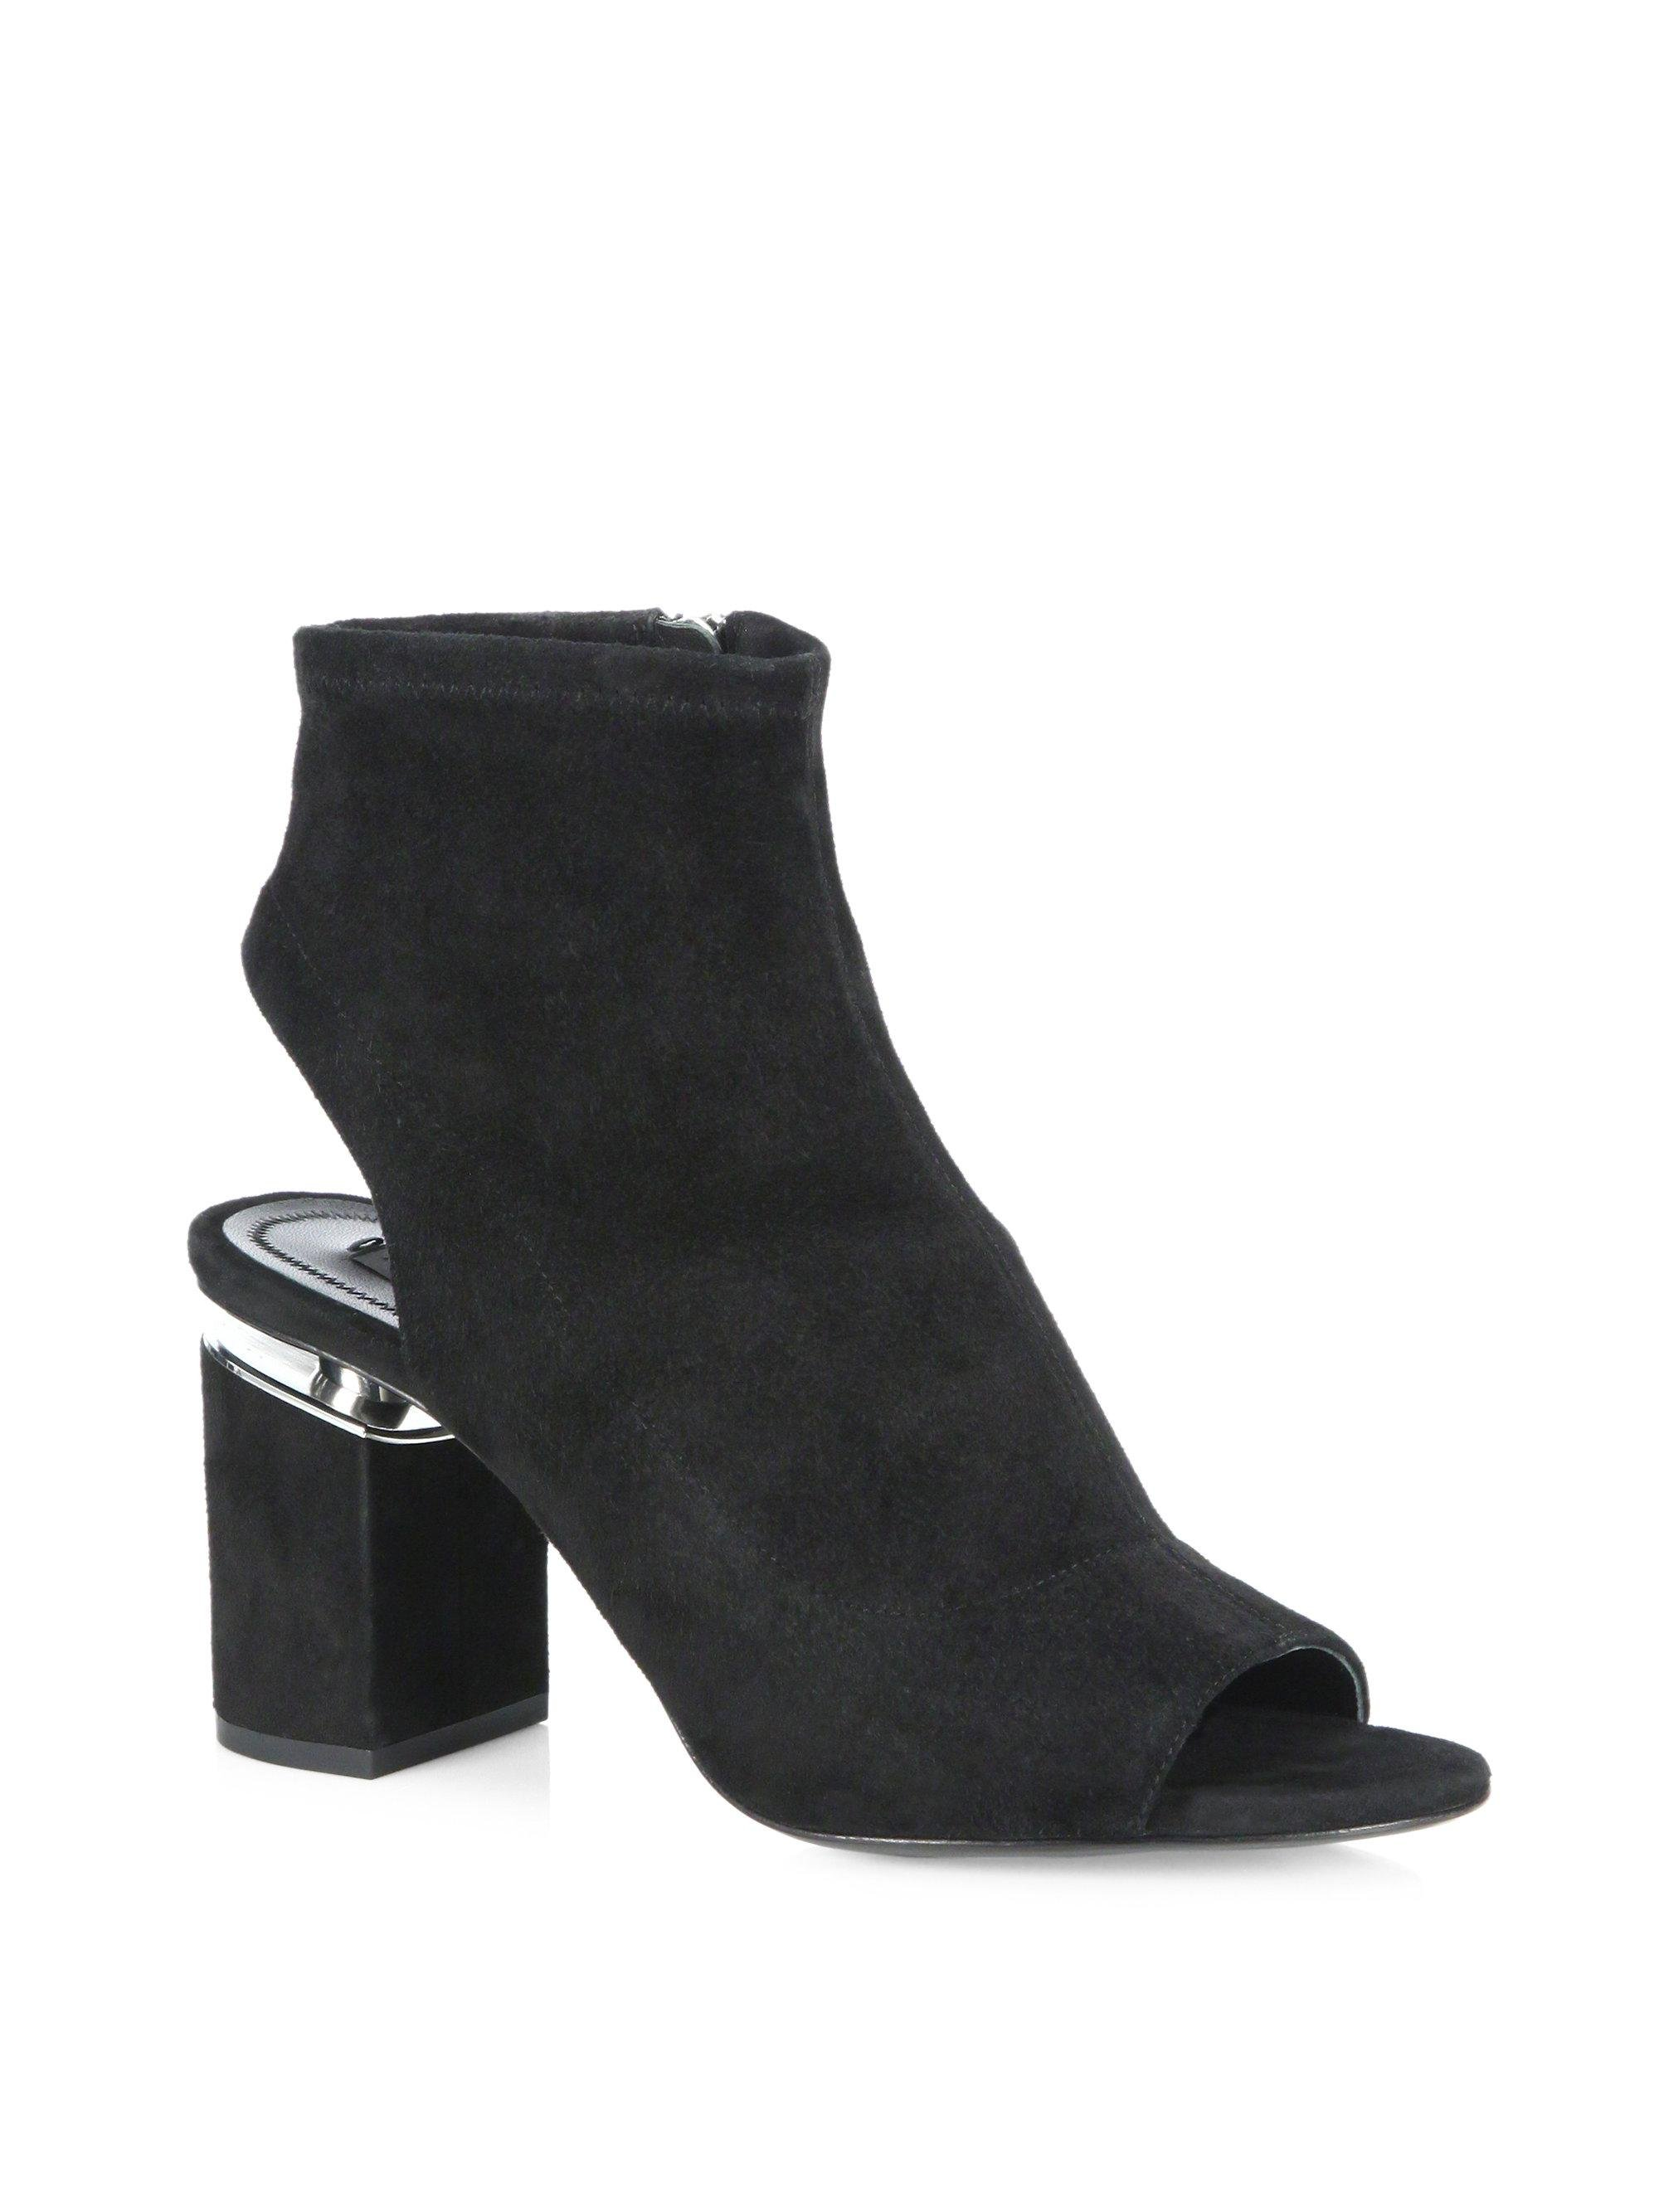 buy cheap 100% guaranteed Alexander Wang Ponyhair Mid-Calf Booties original sale online find great cheap price discount for sale OVAMLHeHpQ